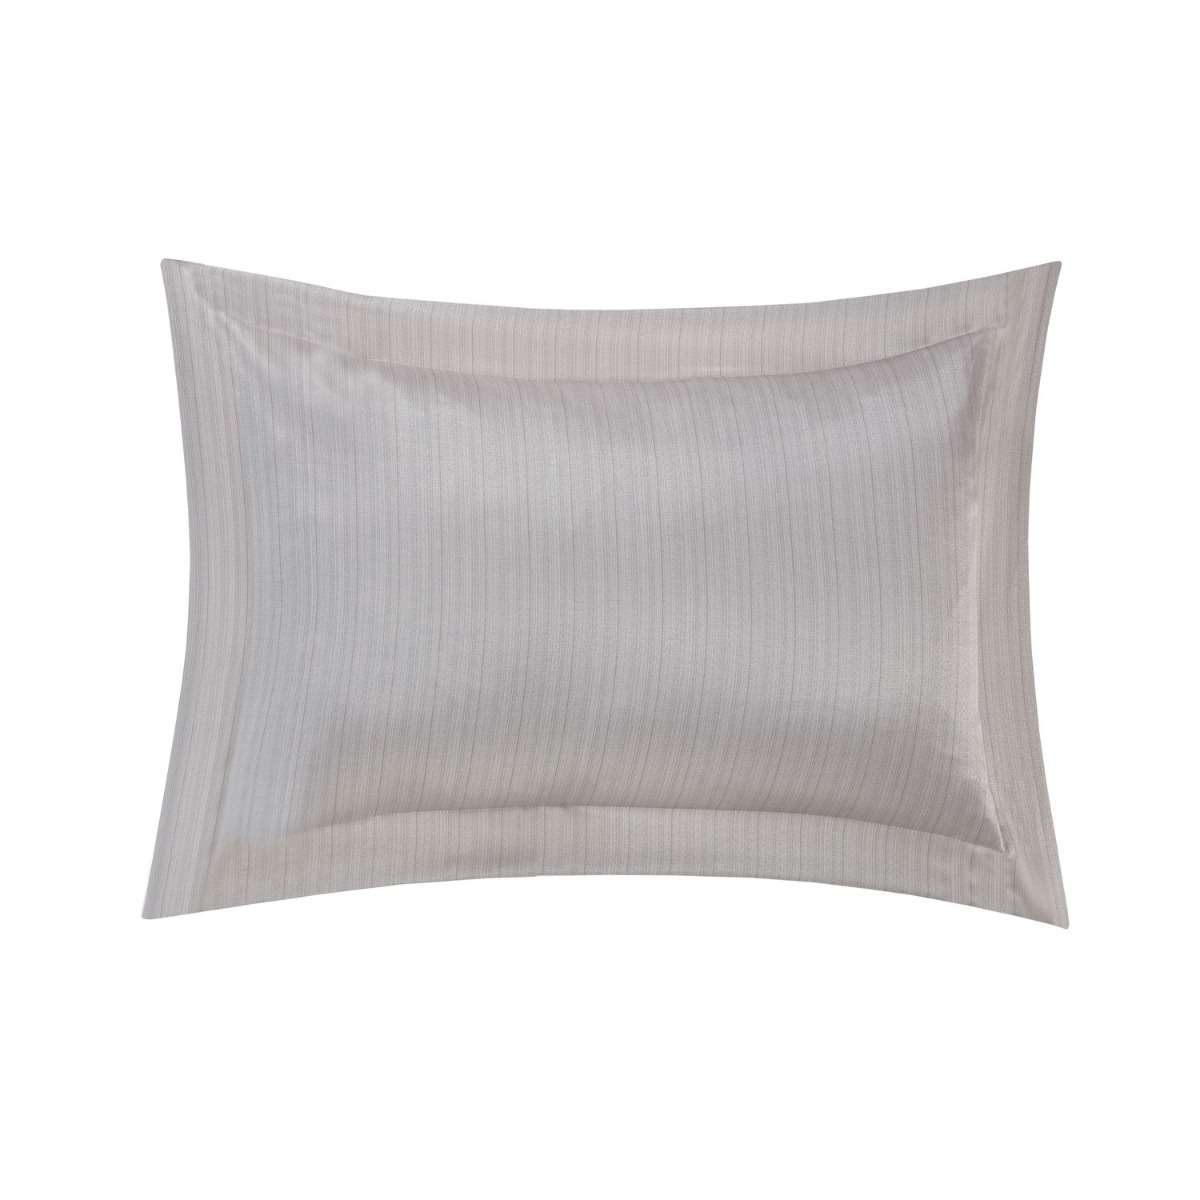 Patience Natural Jacquard Oxford Pillowcases (Pair)